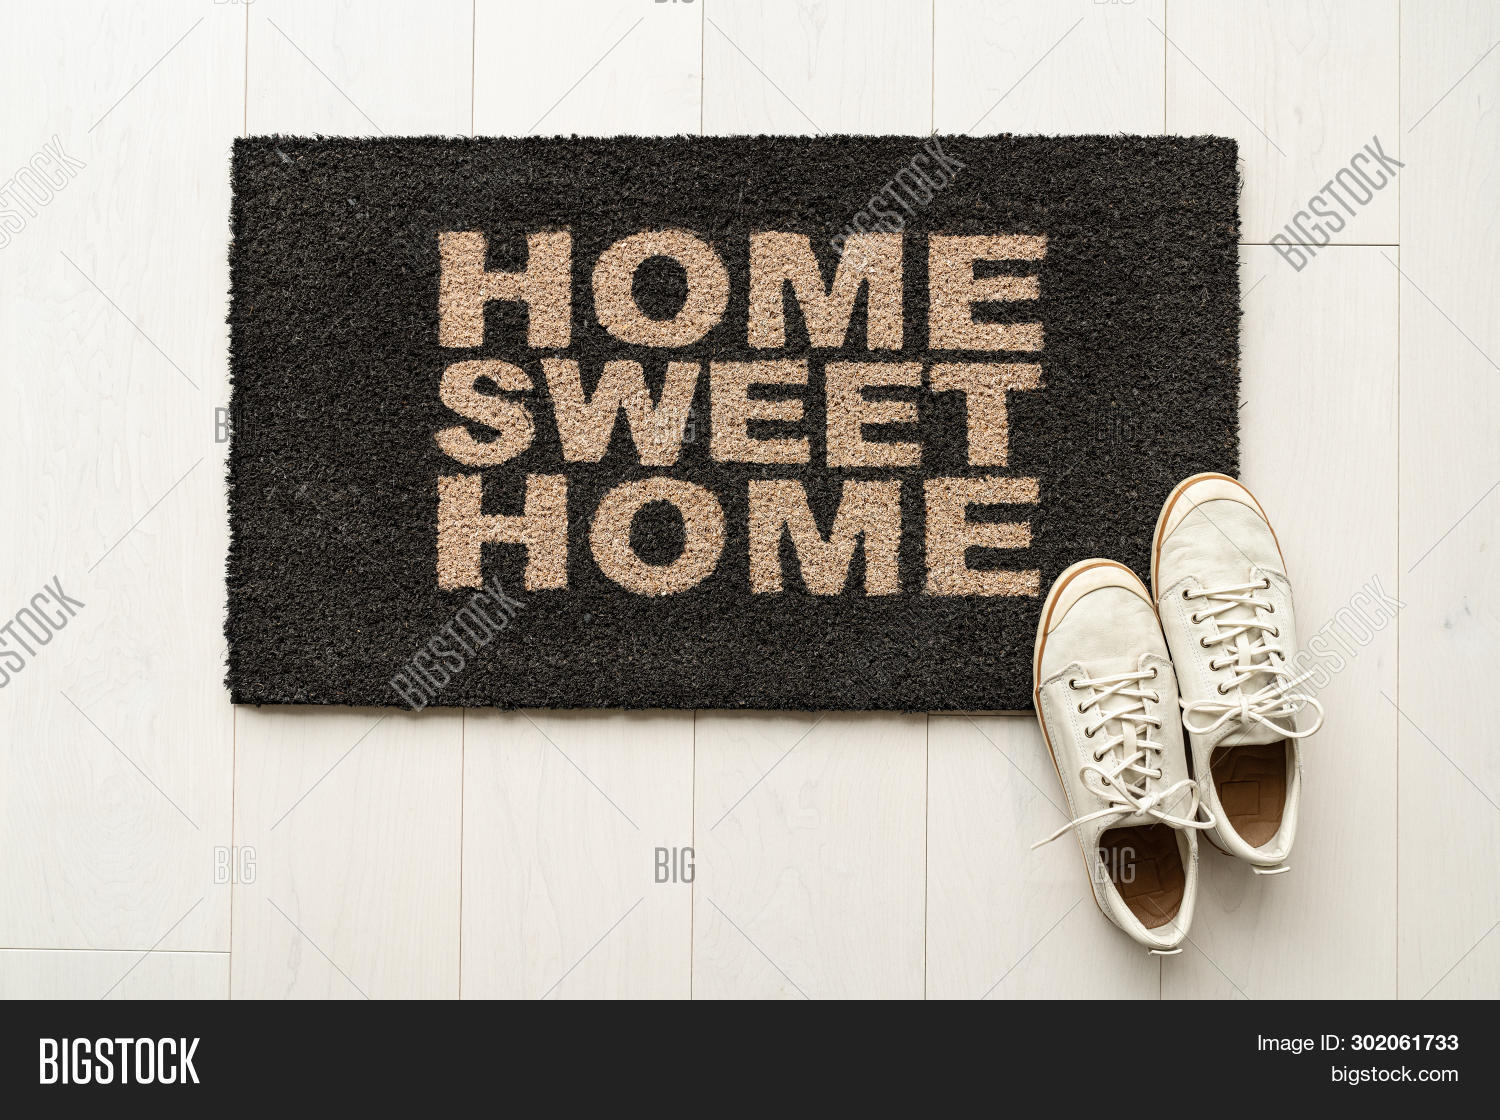 apartment,background,buyer,canvas,casual,condo,cozy,door,doormat,entrance,estate,female,floor,footwear,front,girl,girls,greeting,happy,home,home sweet home,homeowner,house,indoors,inside,mat,move,moving,moving in,new,nobody,object,pair,real,rug,shoe,shoes,sign,sneakers,student,summer,sunny,sweet,texture,welcome,white,womans,womens,wood,young